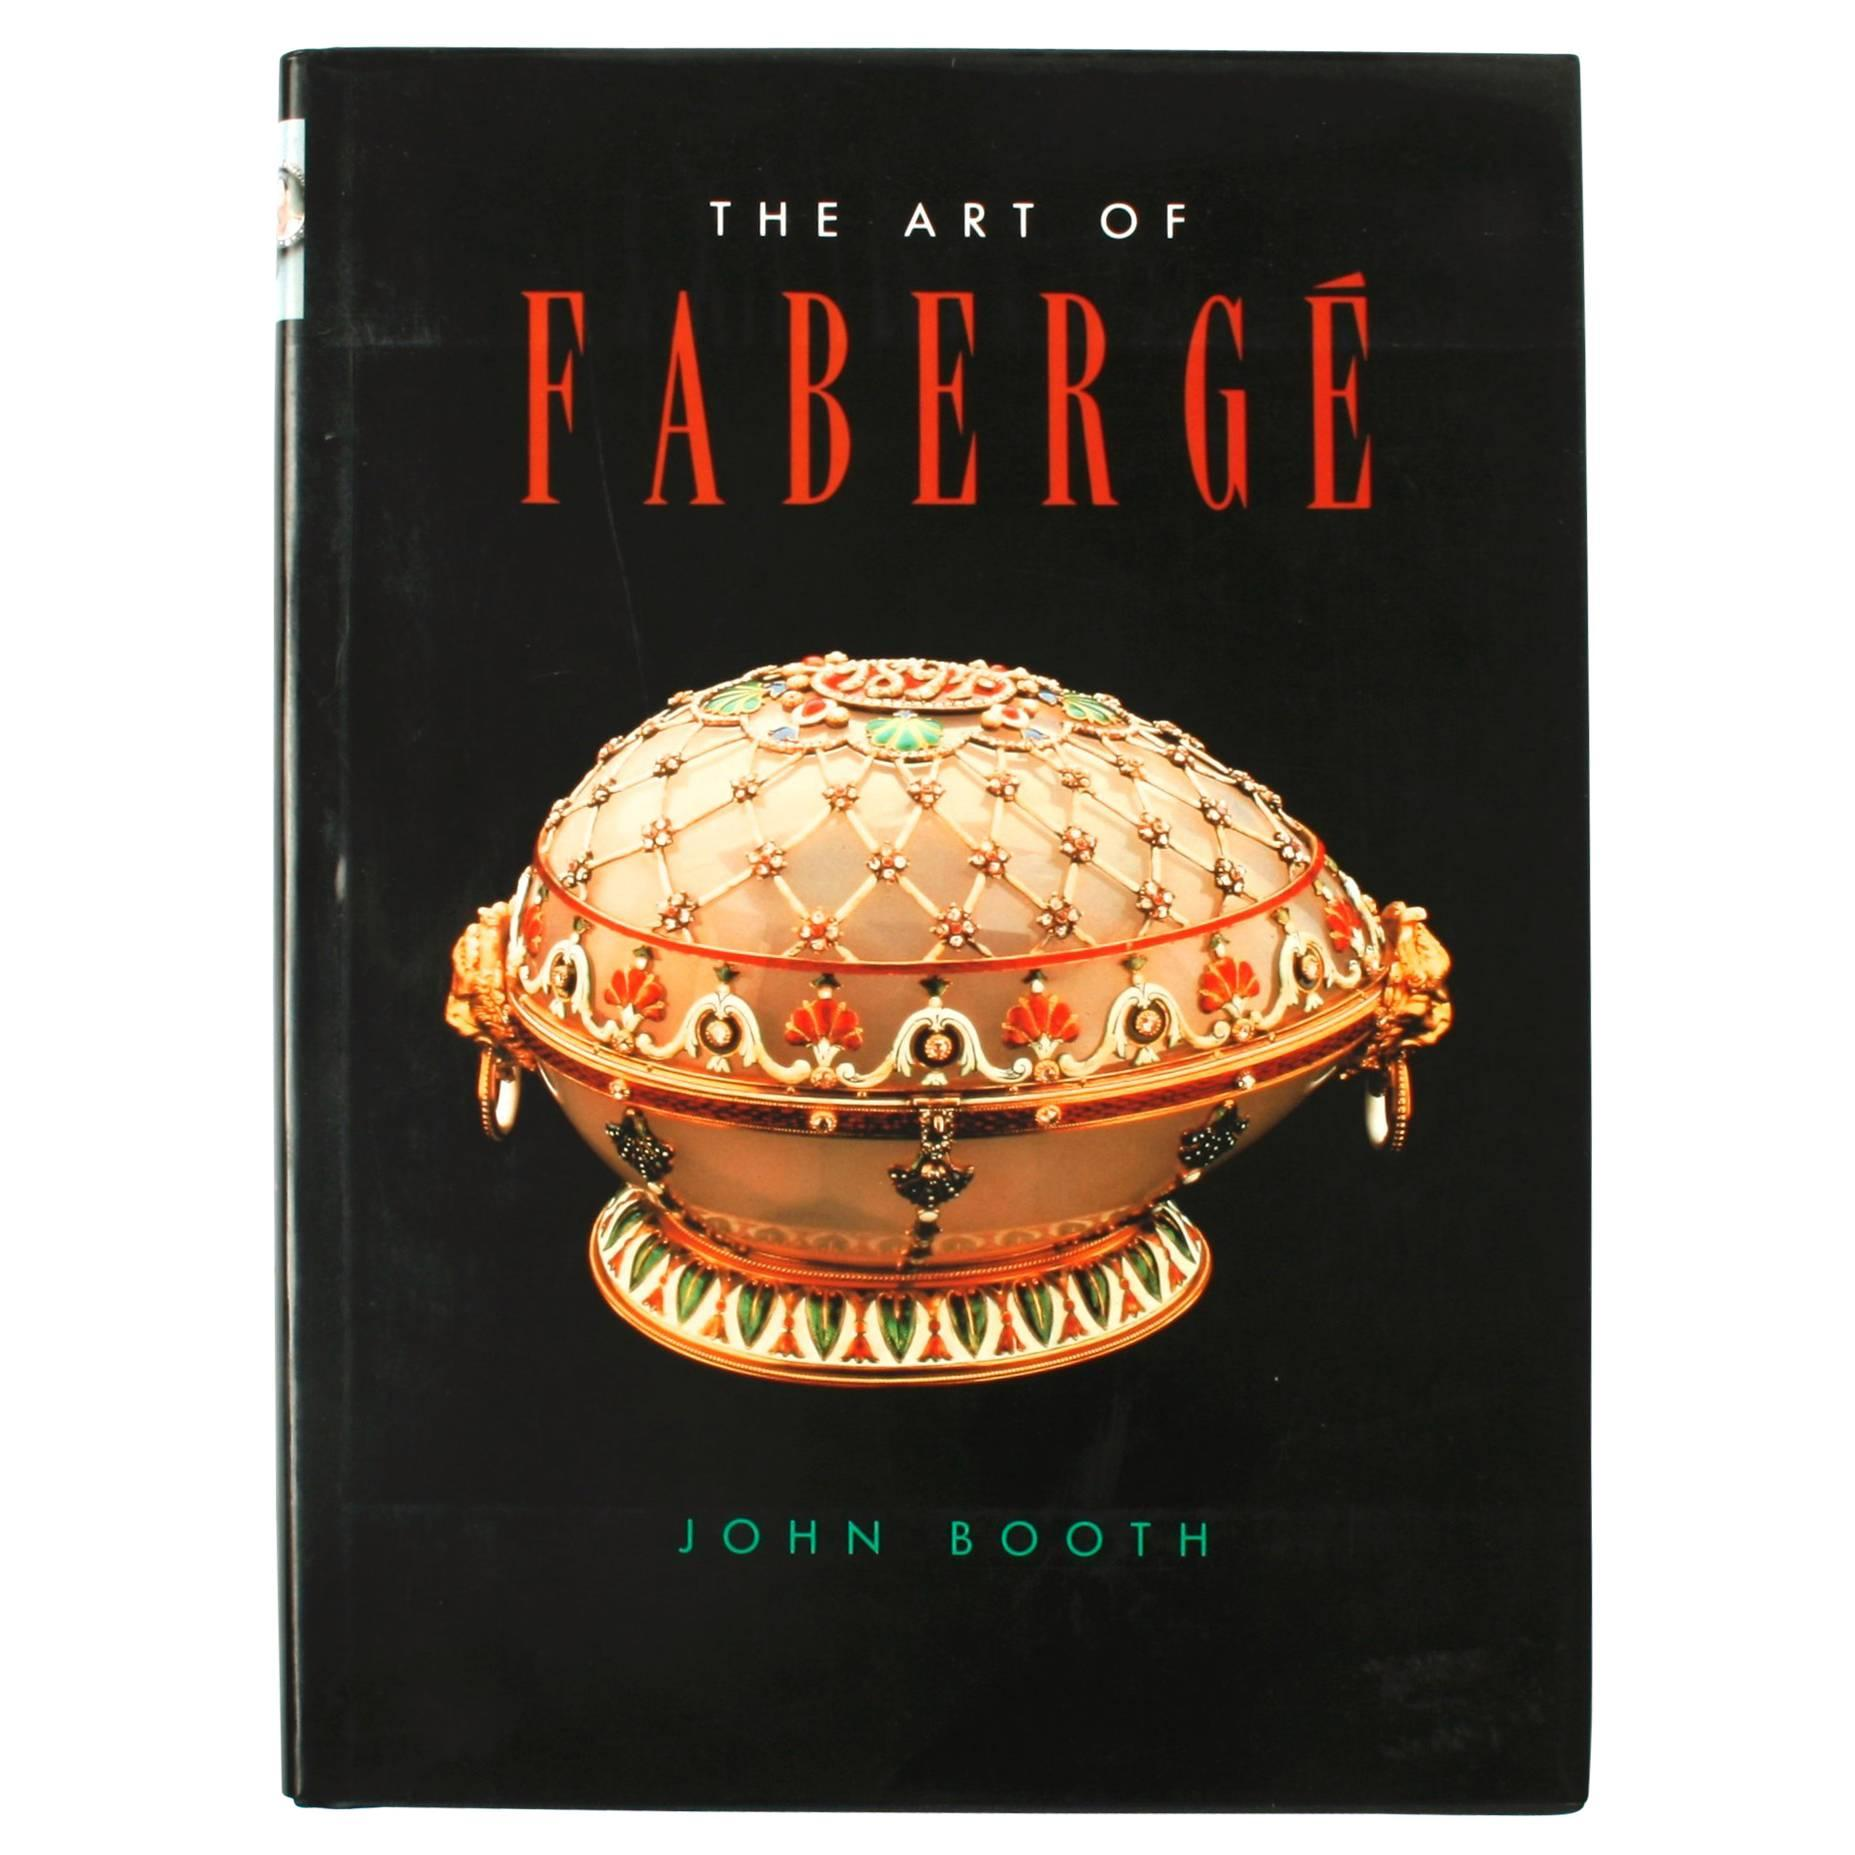 Art of Fabergé by John Booth, First Edition